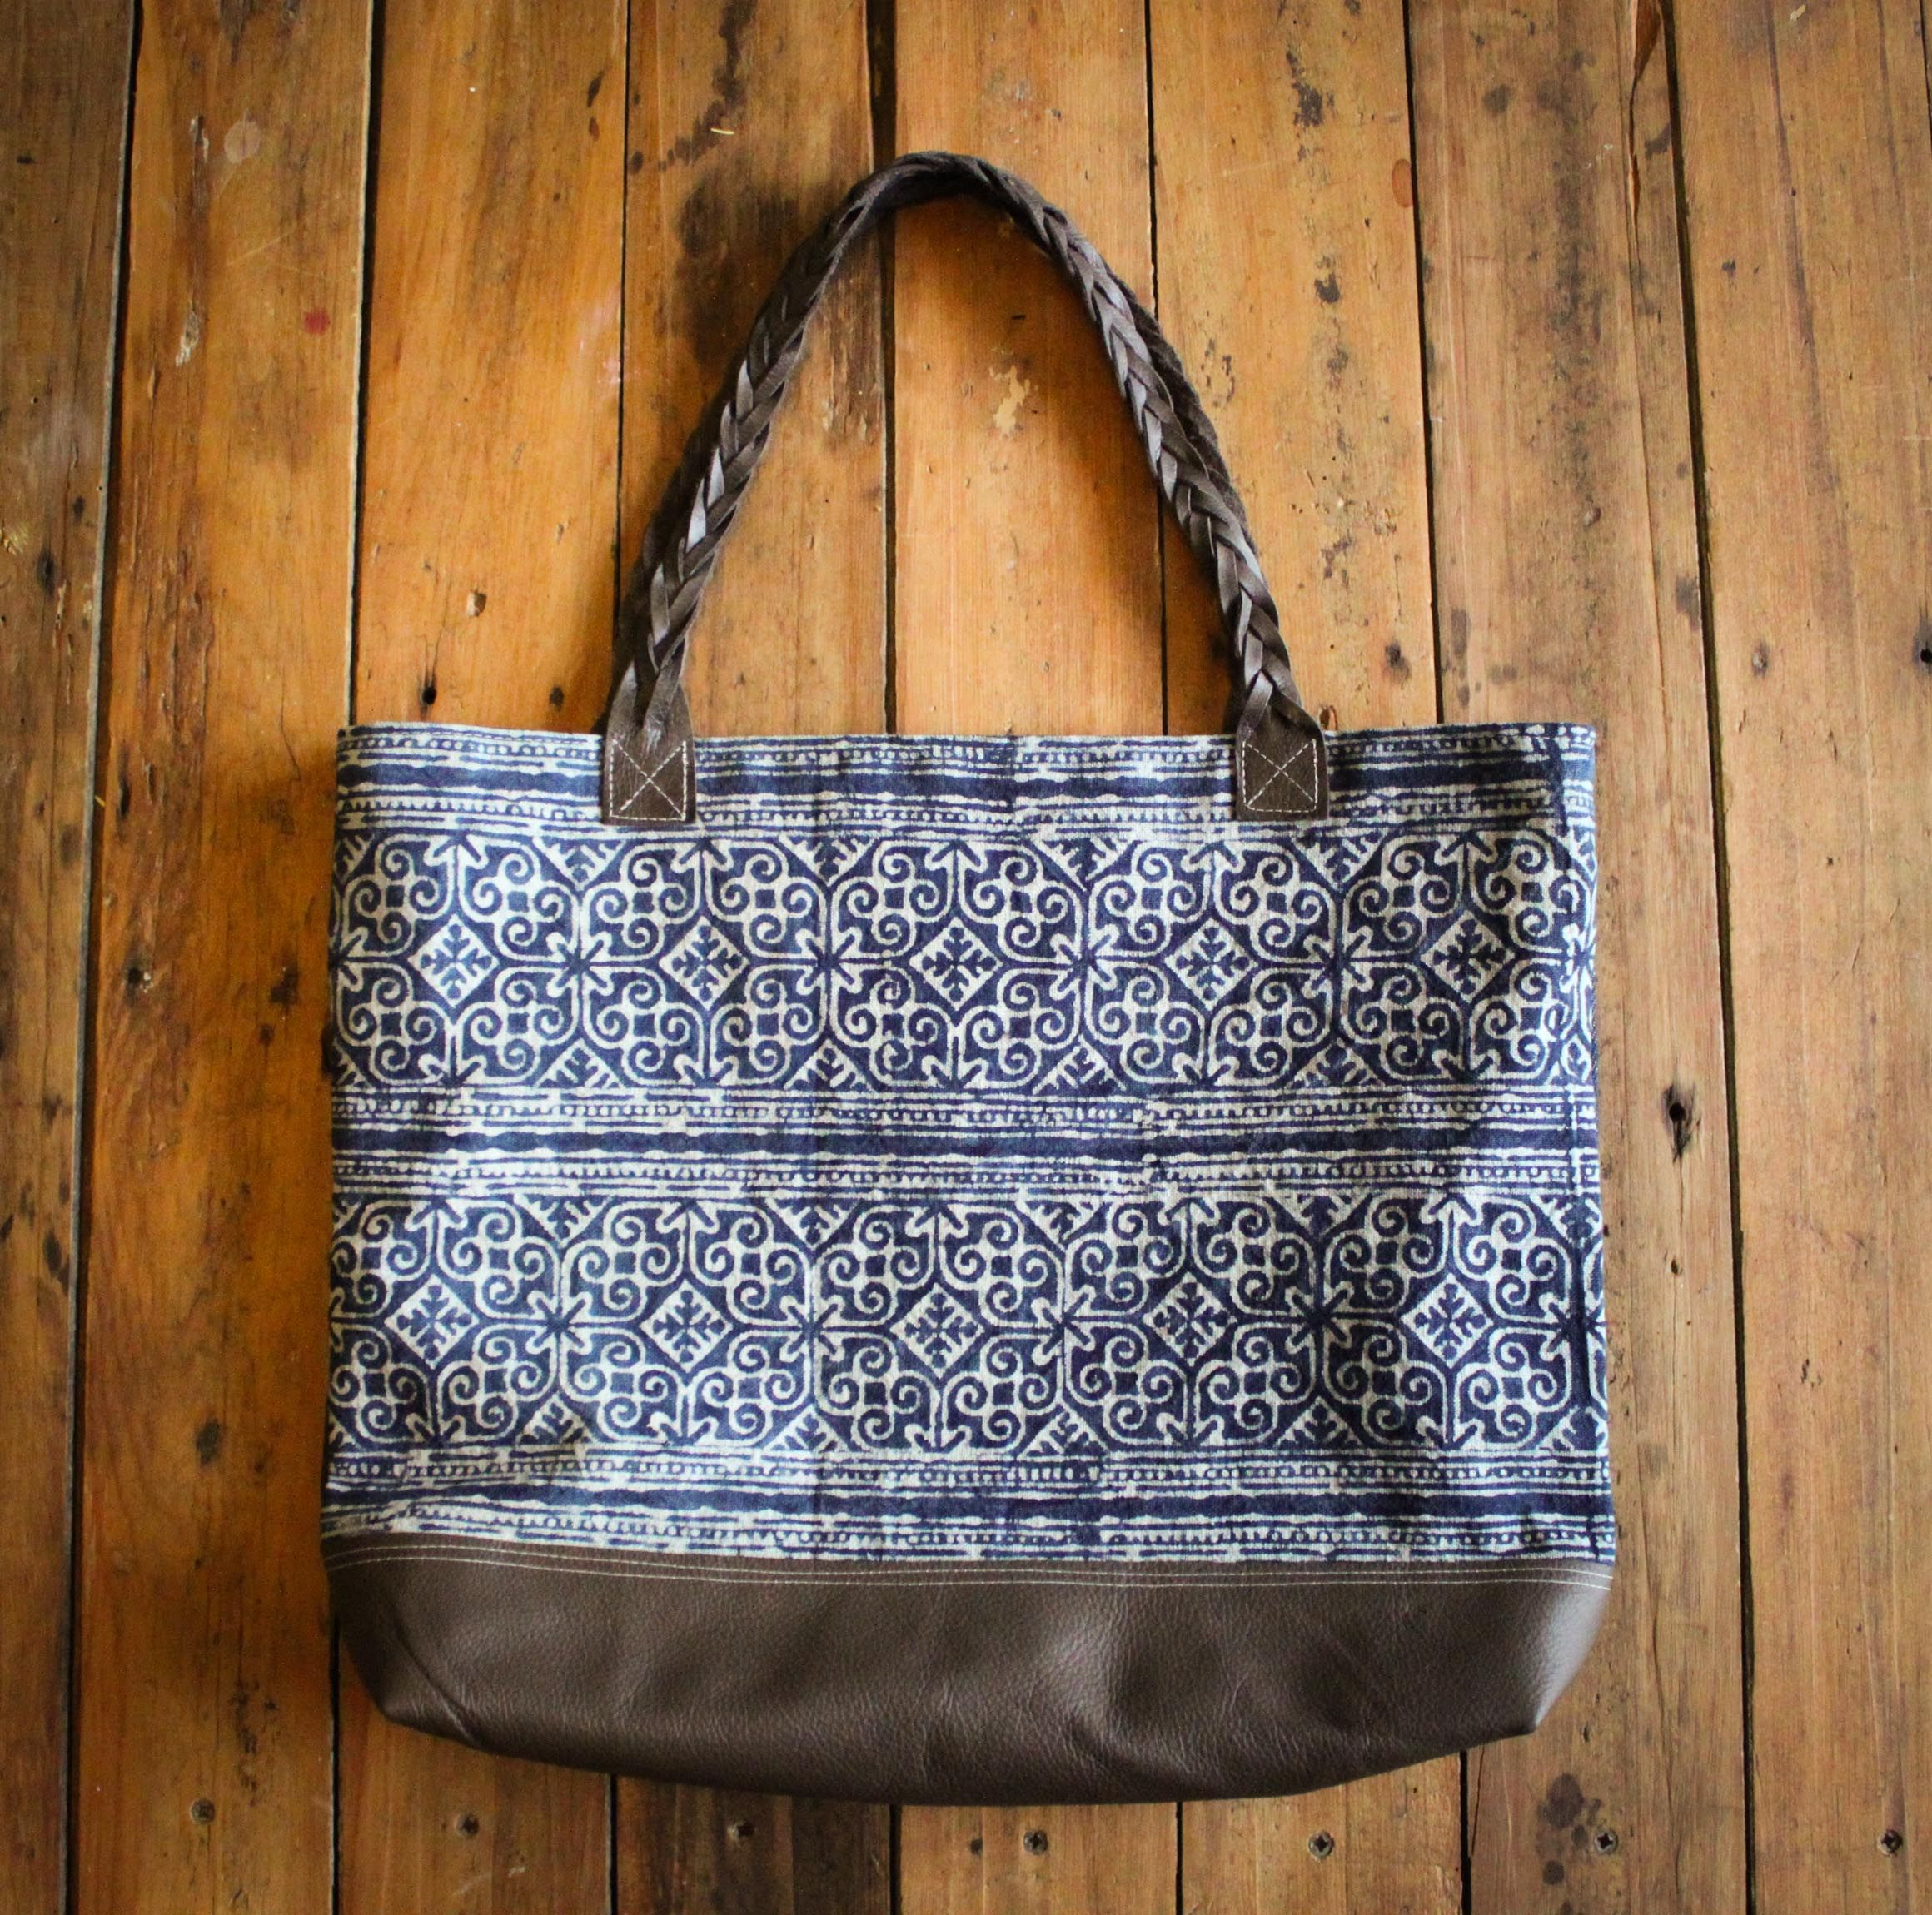 vintage batik fabric and leather tote, by NZFINCH.